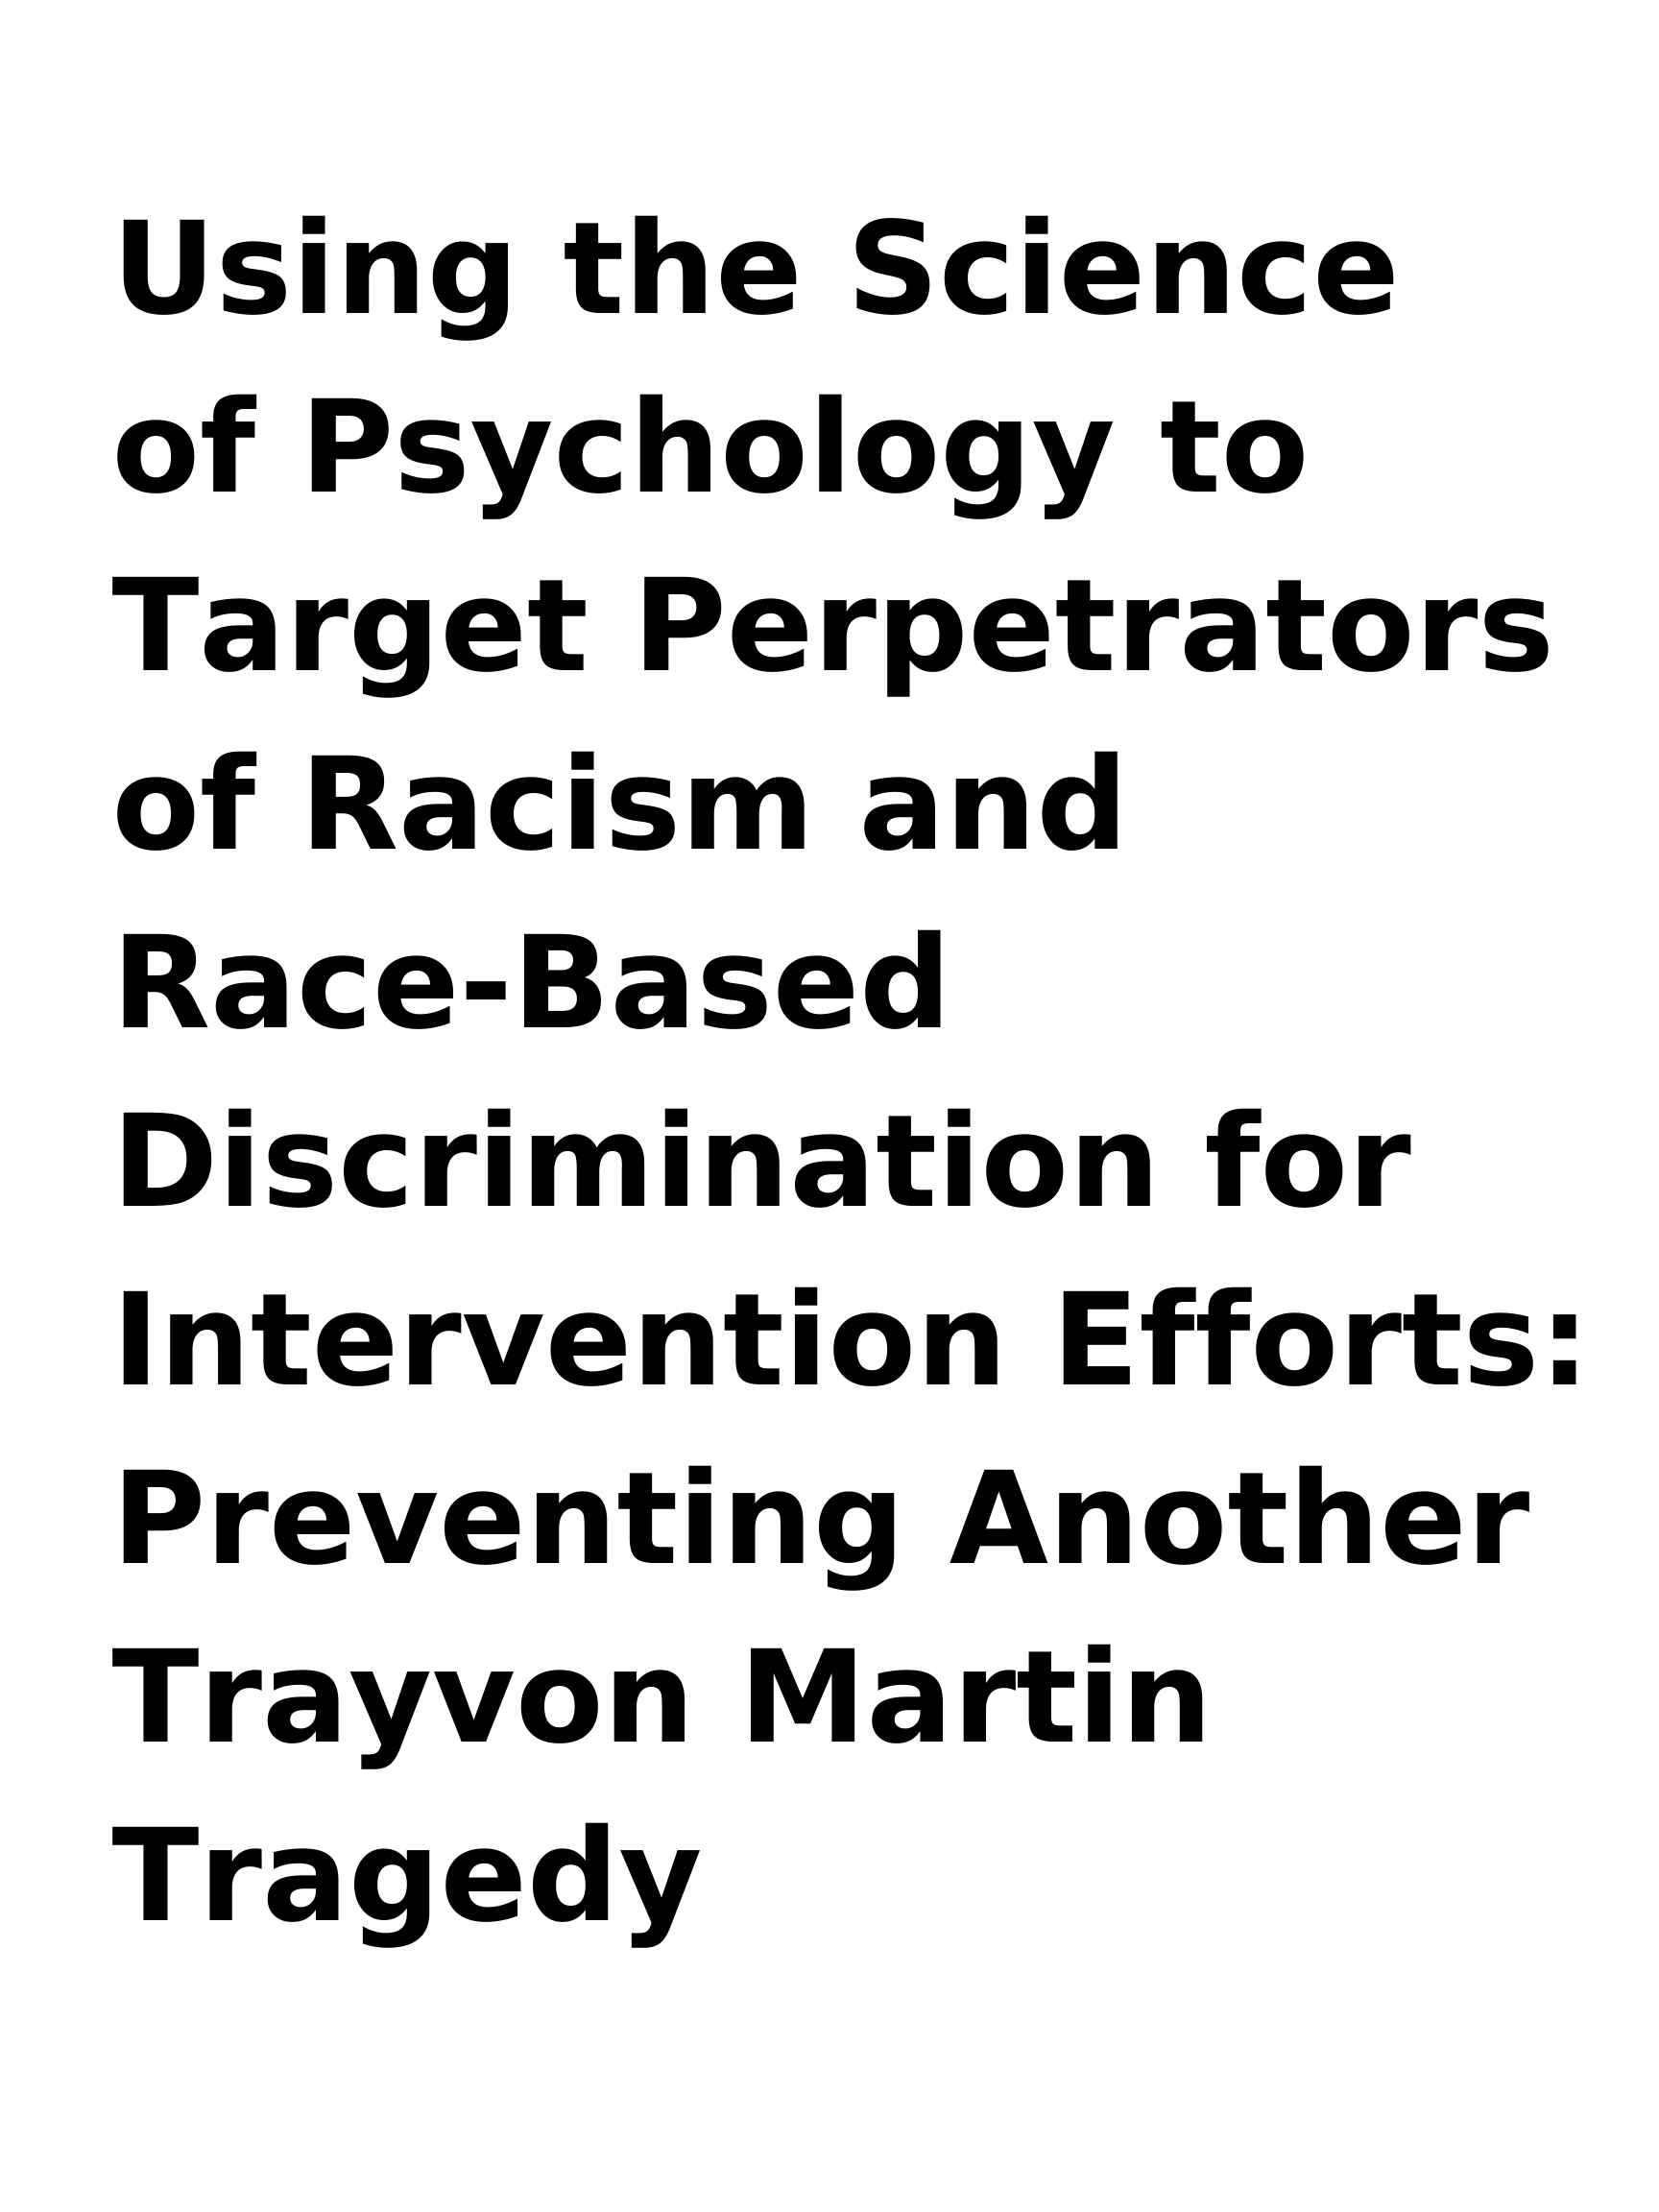 Using the Science of Psychology to Target Perpetrators of Racism and Race-Based Discrimination for Intervention Efforts_ Preventing Another Trayvon Martin Tragedy